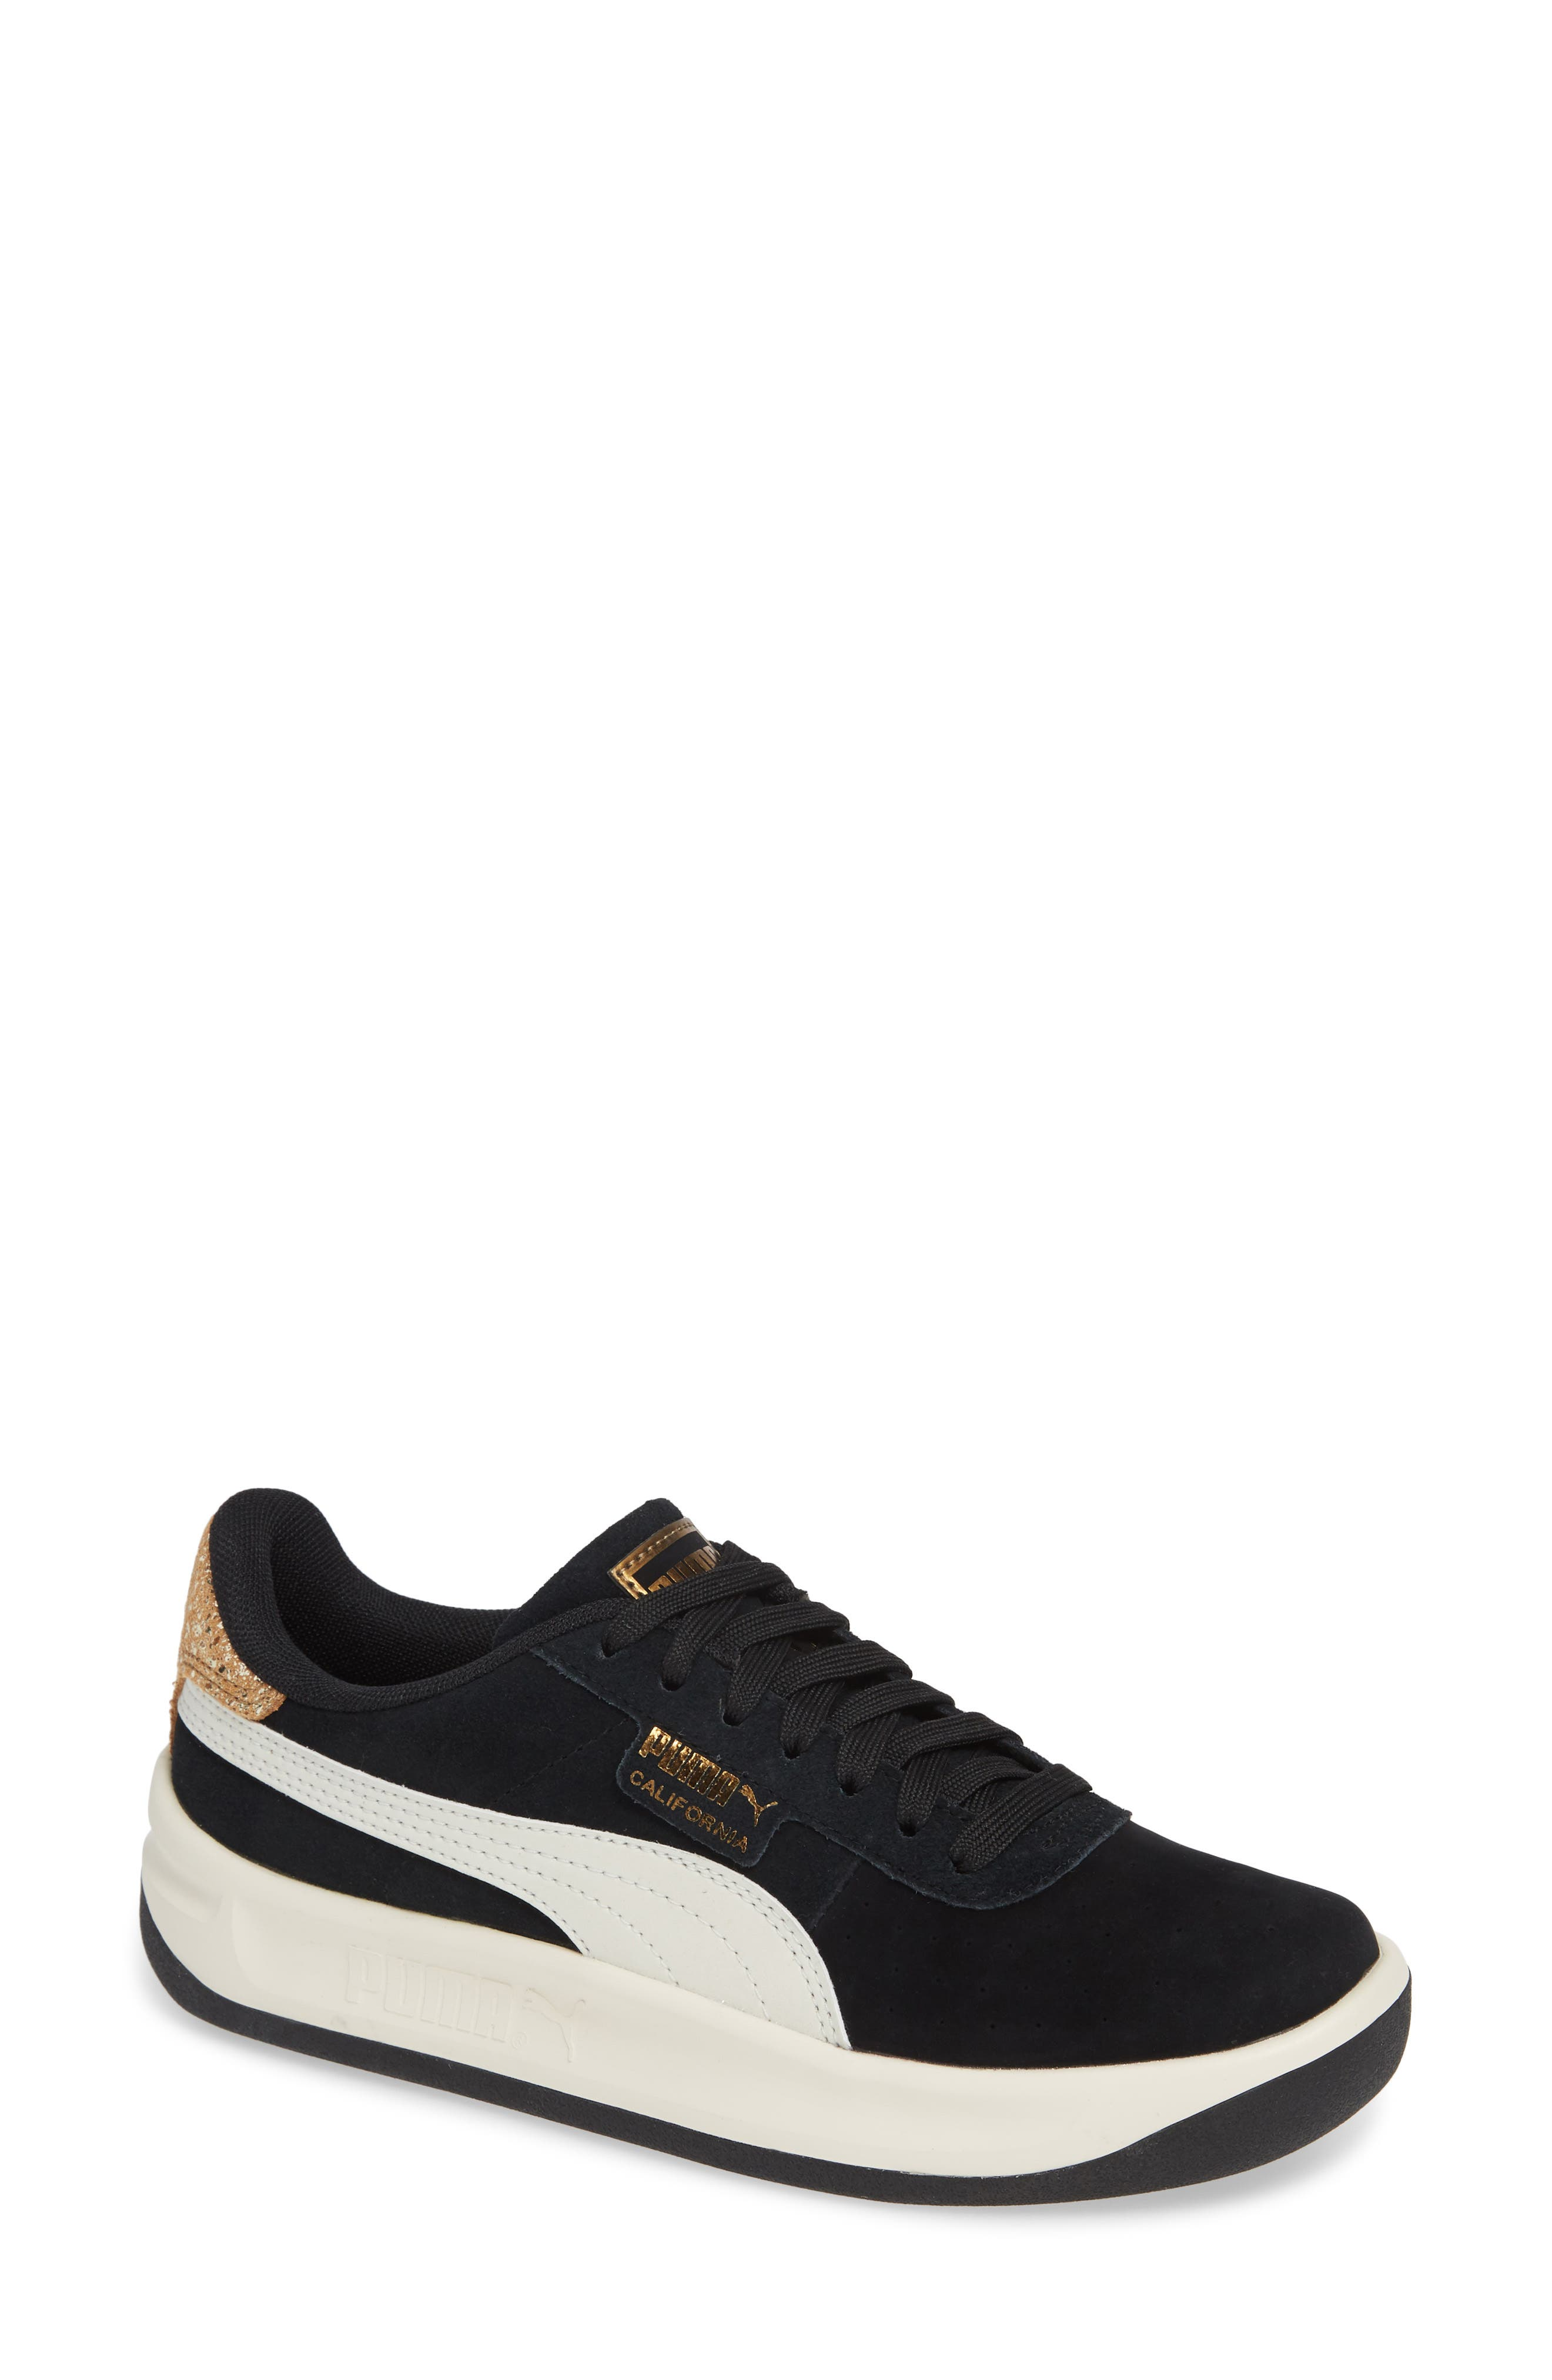 PUMA California Metallic Sneaker, Main, color, BLACK/ WHITE/ METALLIC BRONZE